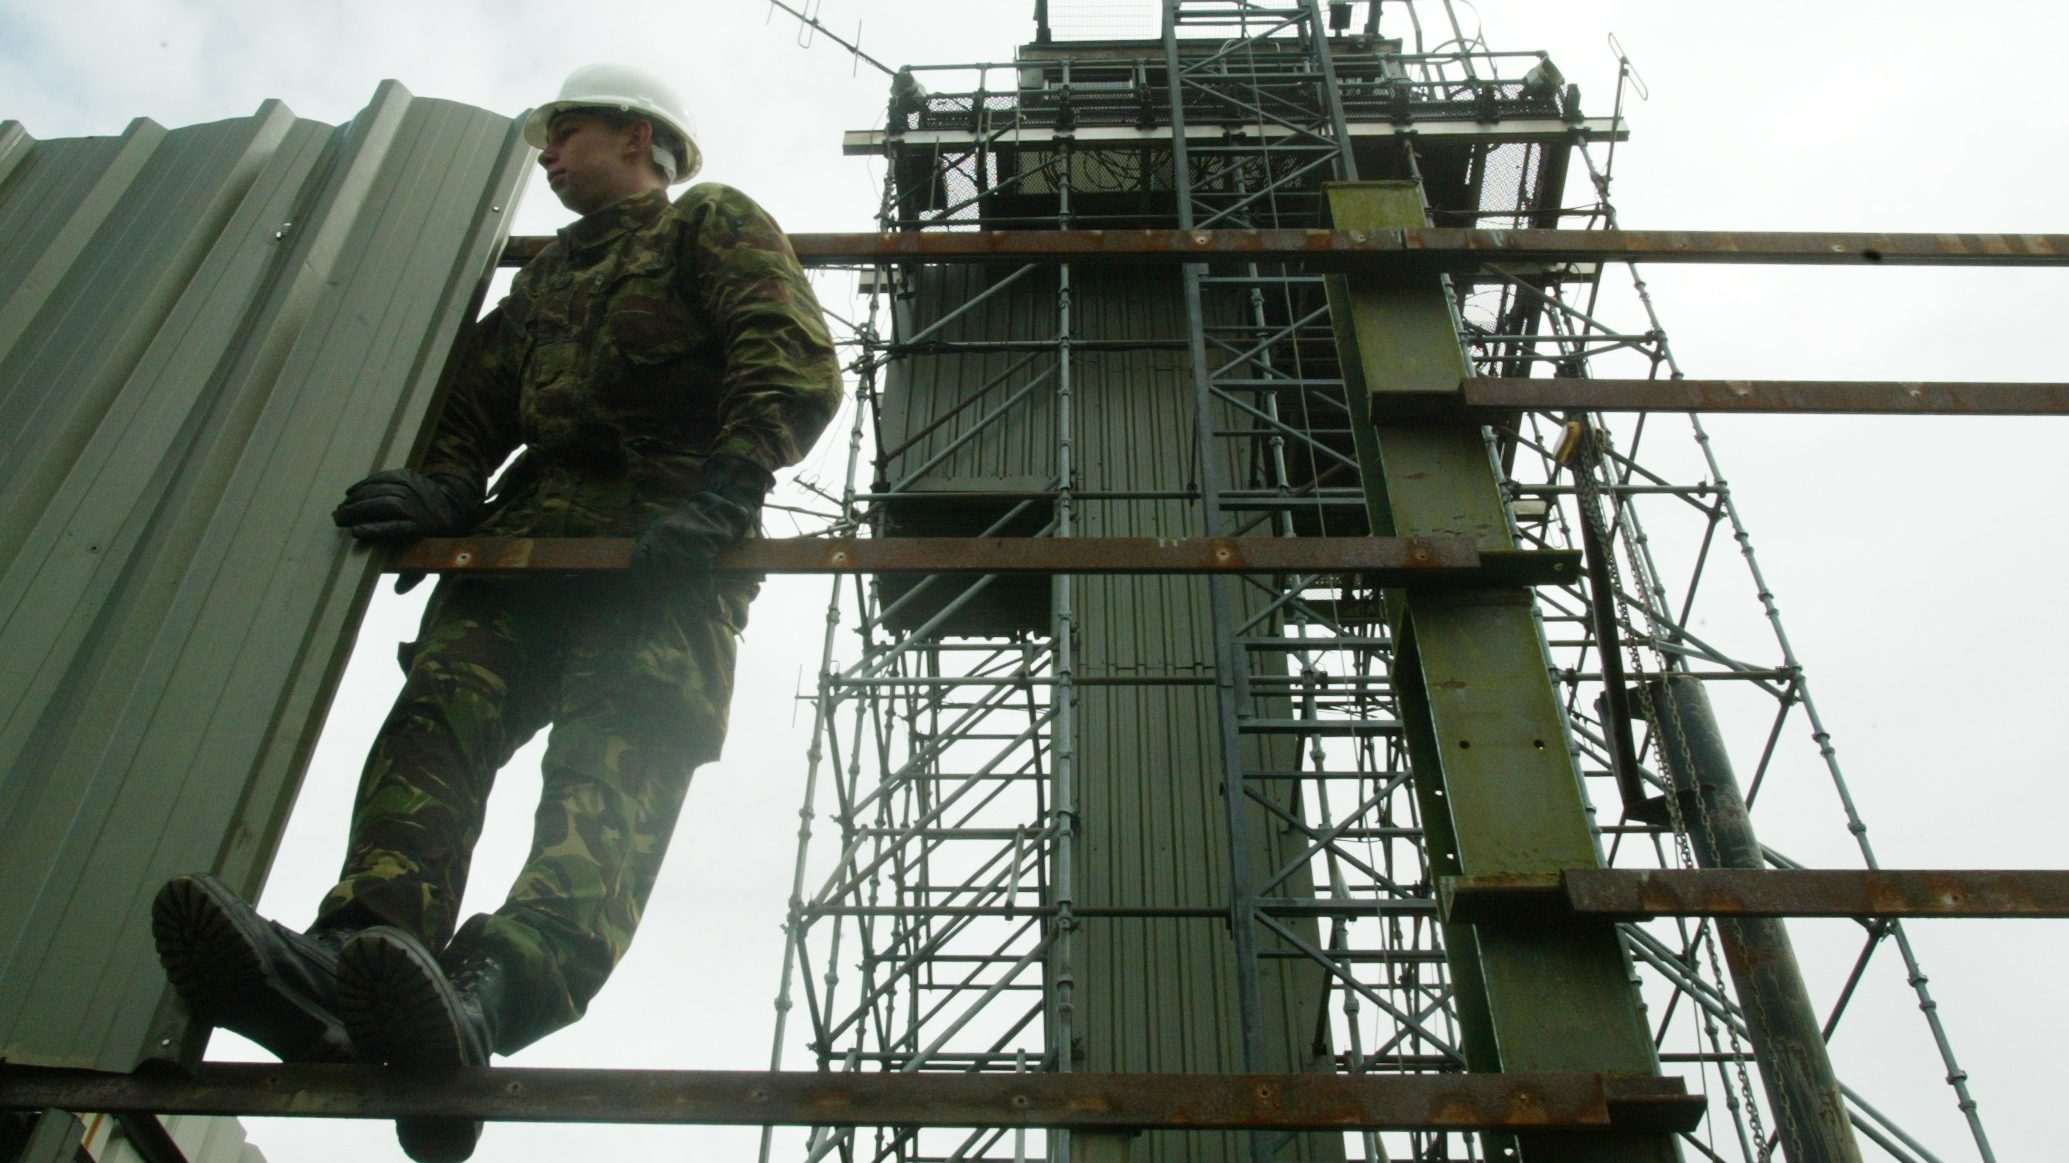 A British army sapper carries out demolition work at the border.